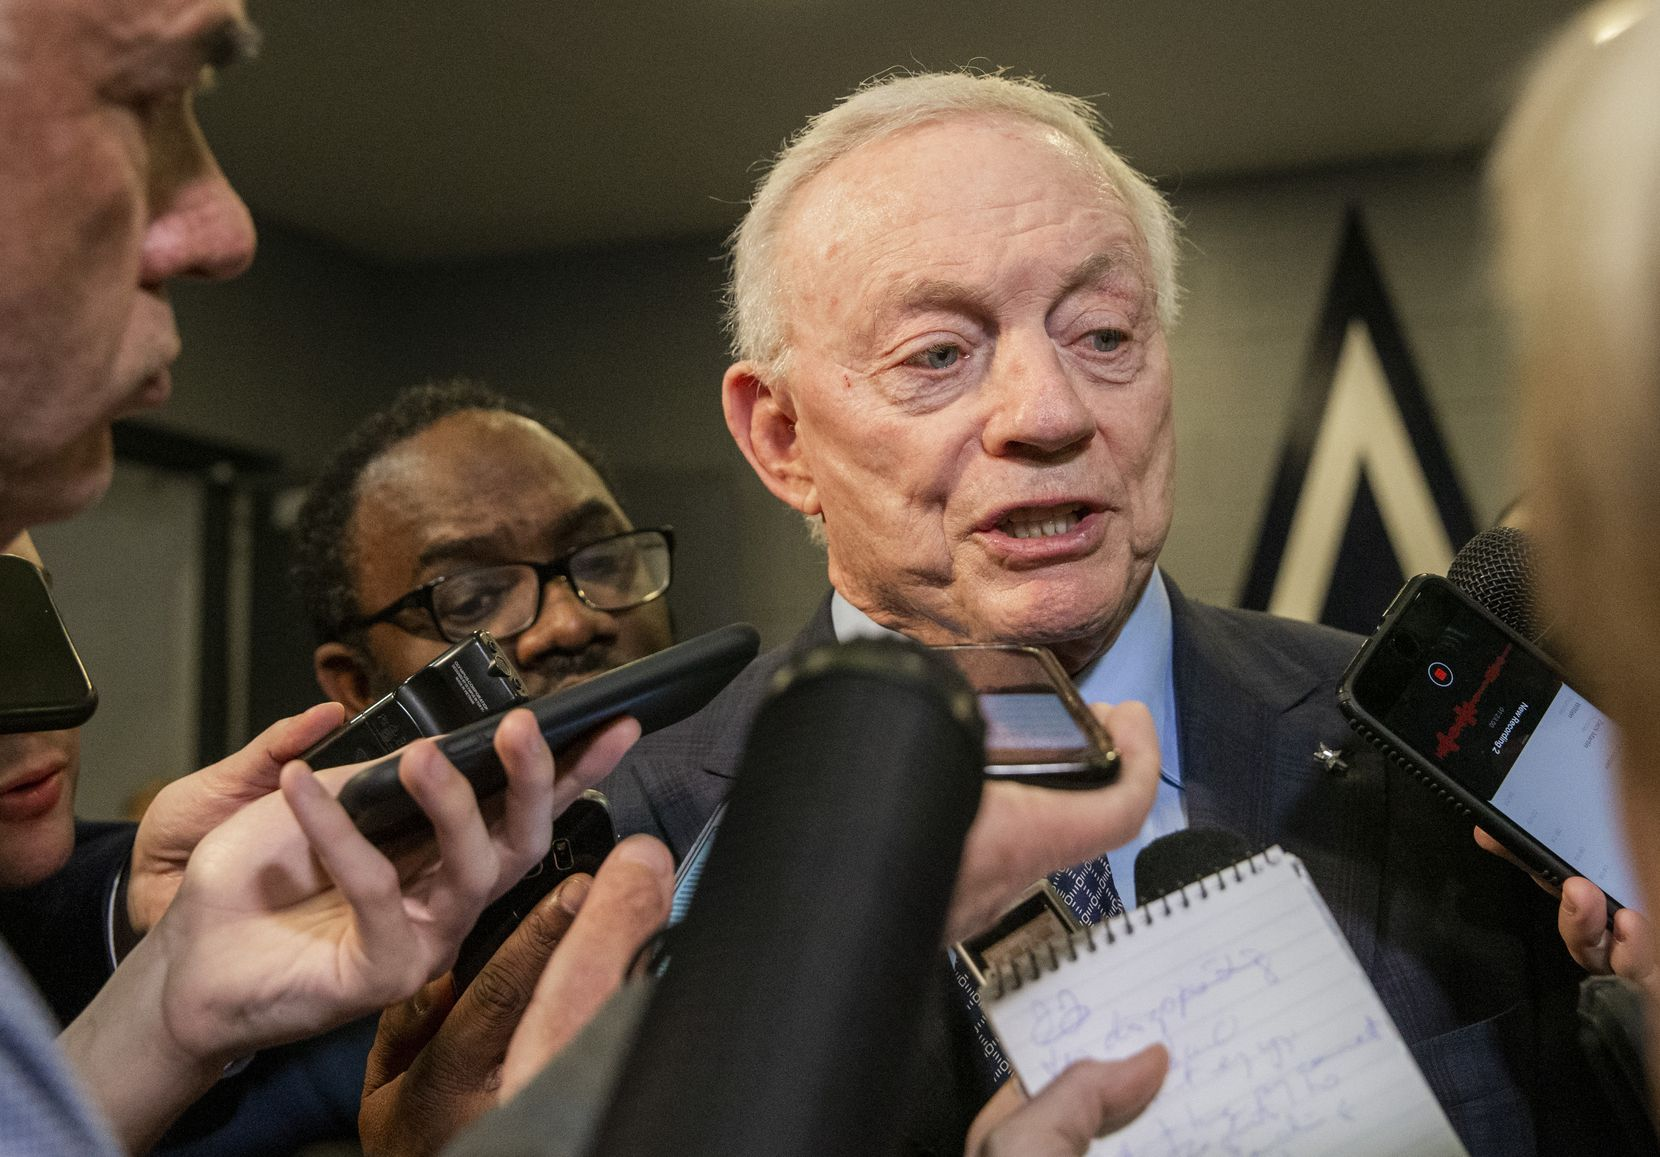 FILE - Cowboys owner Jerry Jones speaks with members of the media following a game between Washington and Dallas on Sunday, Dec. 29, 2019, at AT&T Stadium in Arlington.